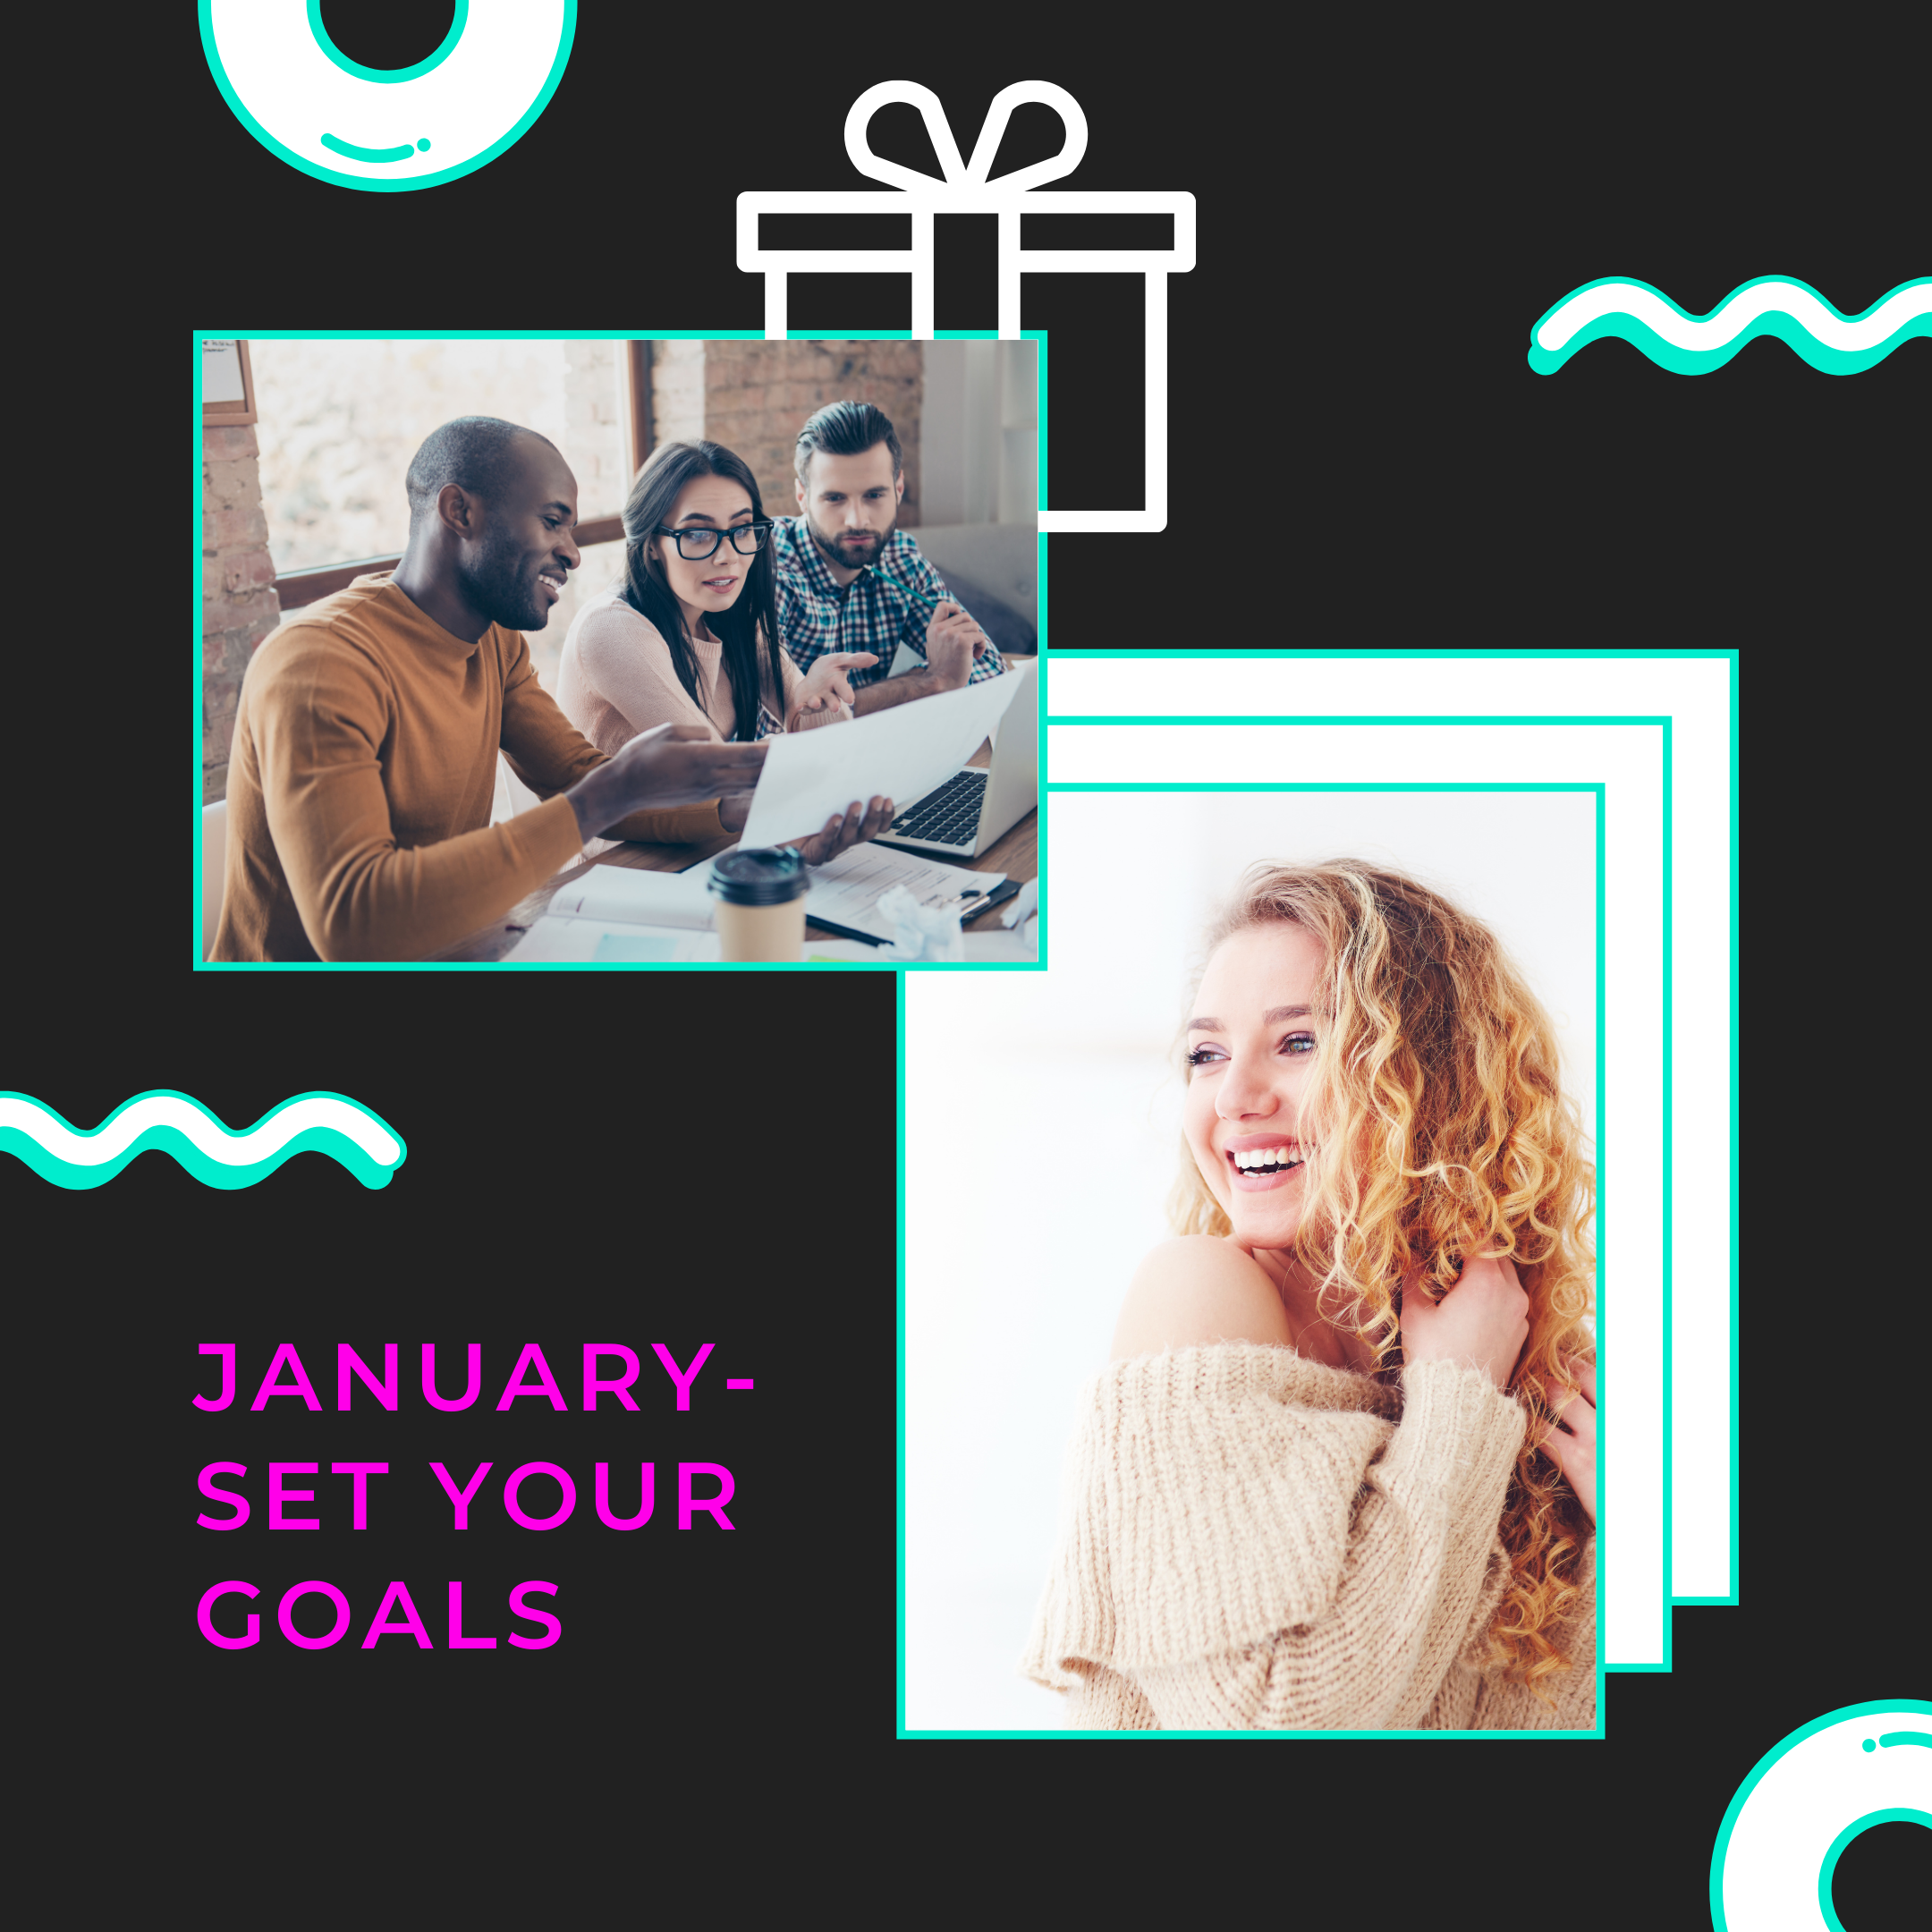 Set your goals in January